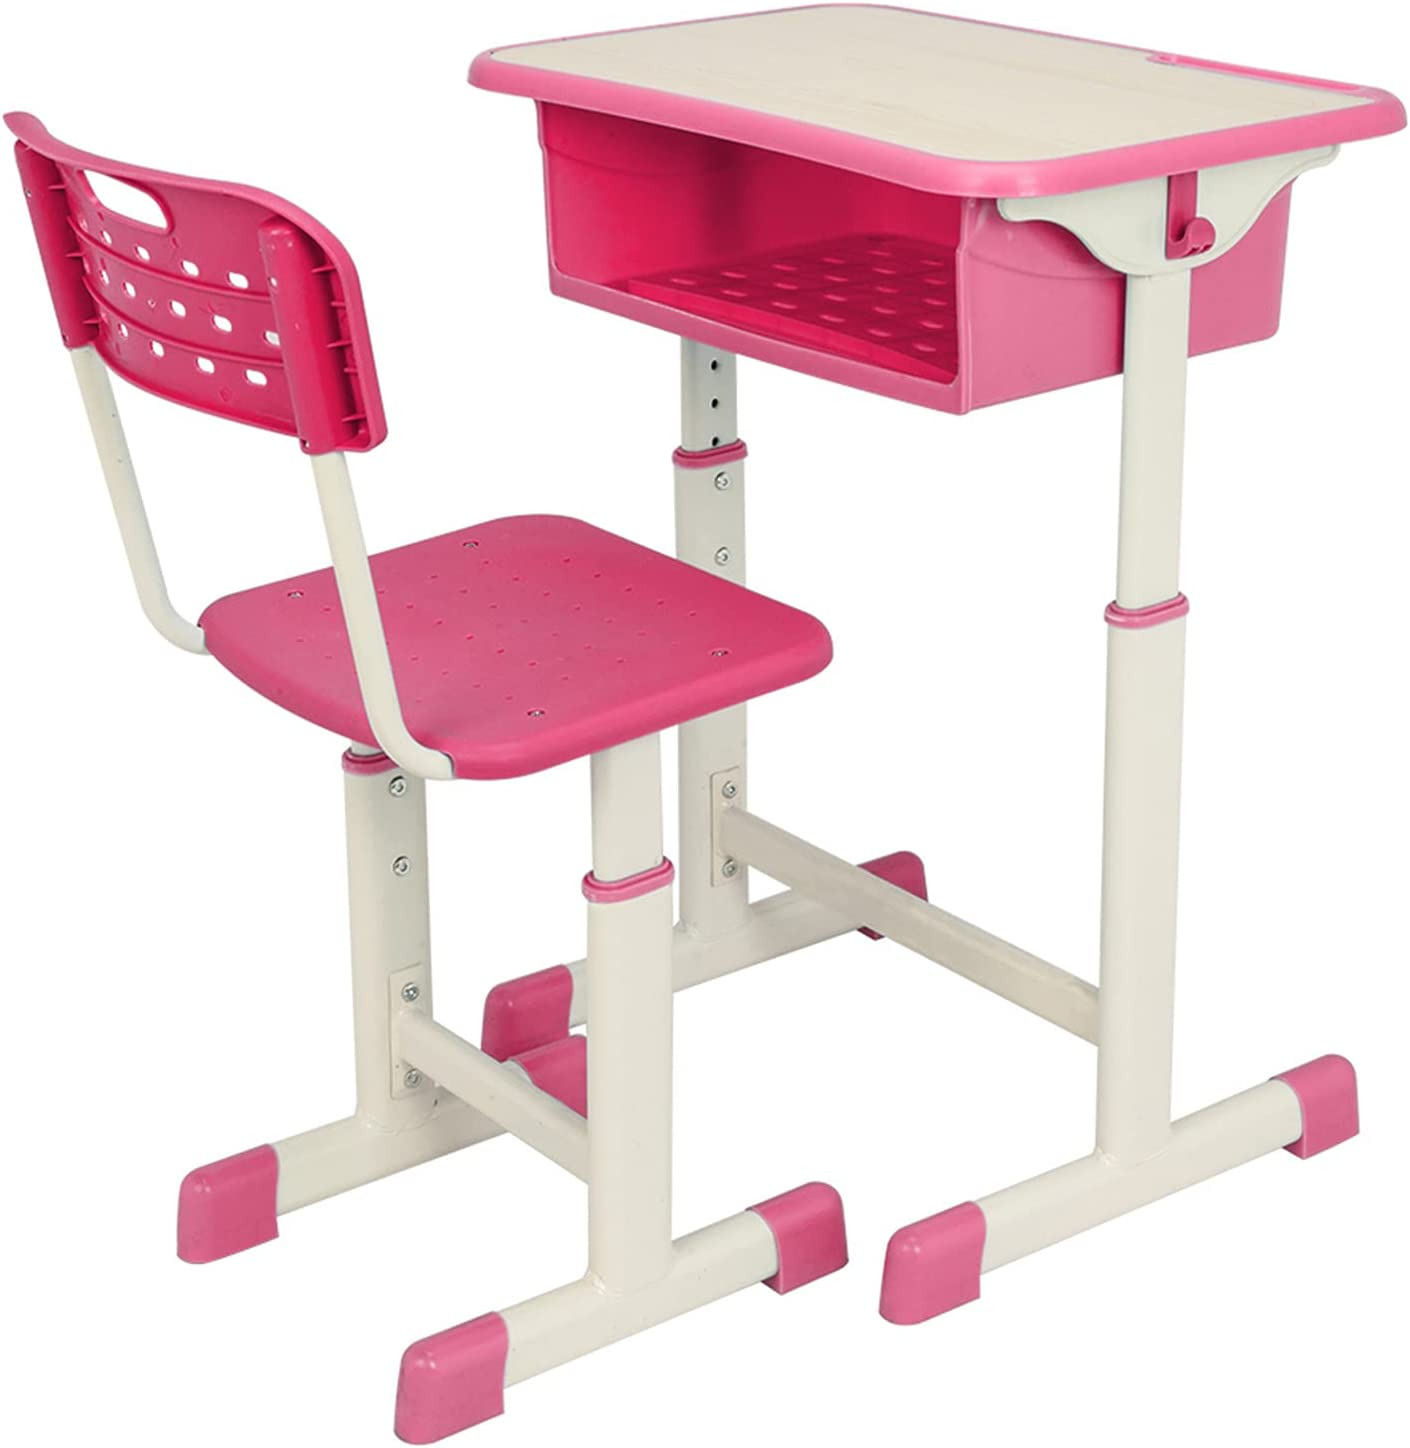 cossepair GT4-OXJ Adjustable Student Desk New Shipping Free Shipping Limited price sale Pink Kit Chair and